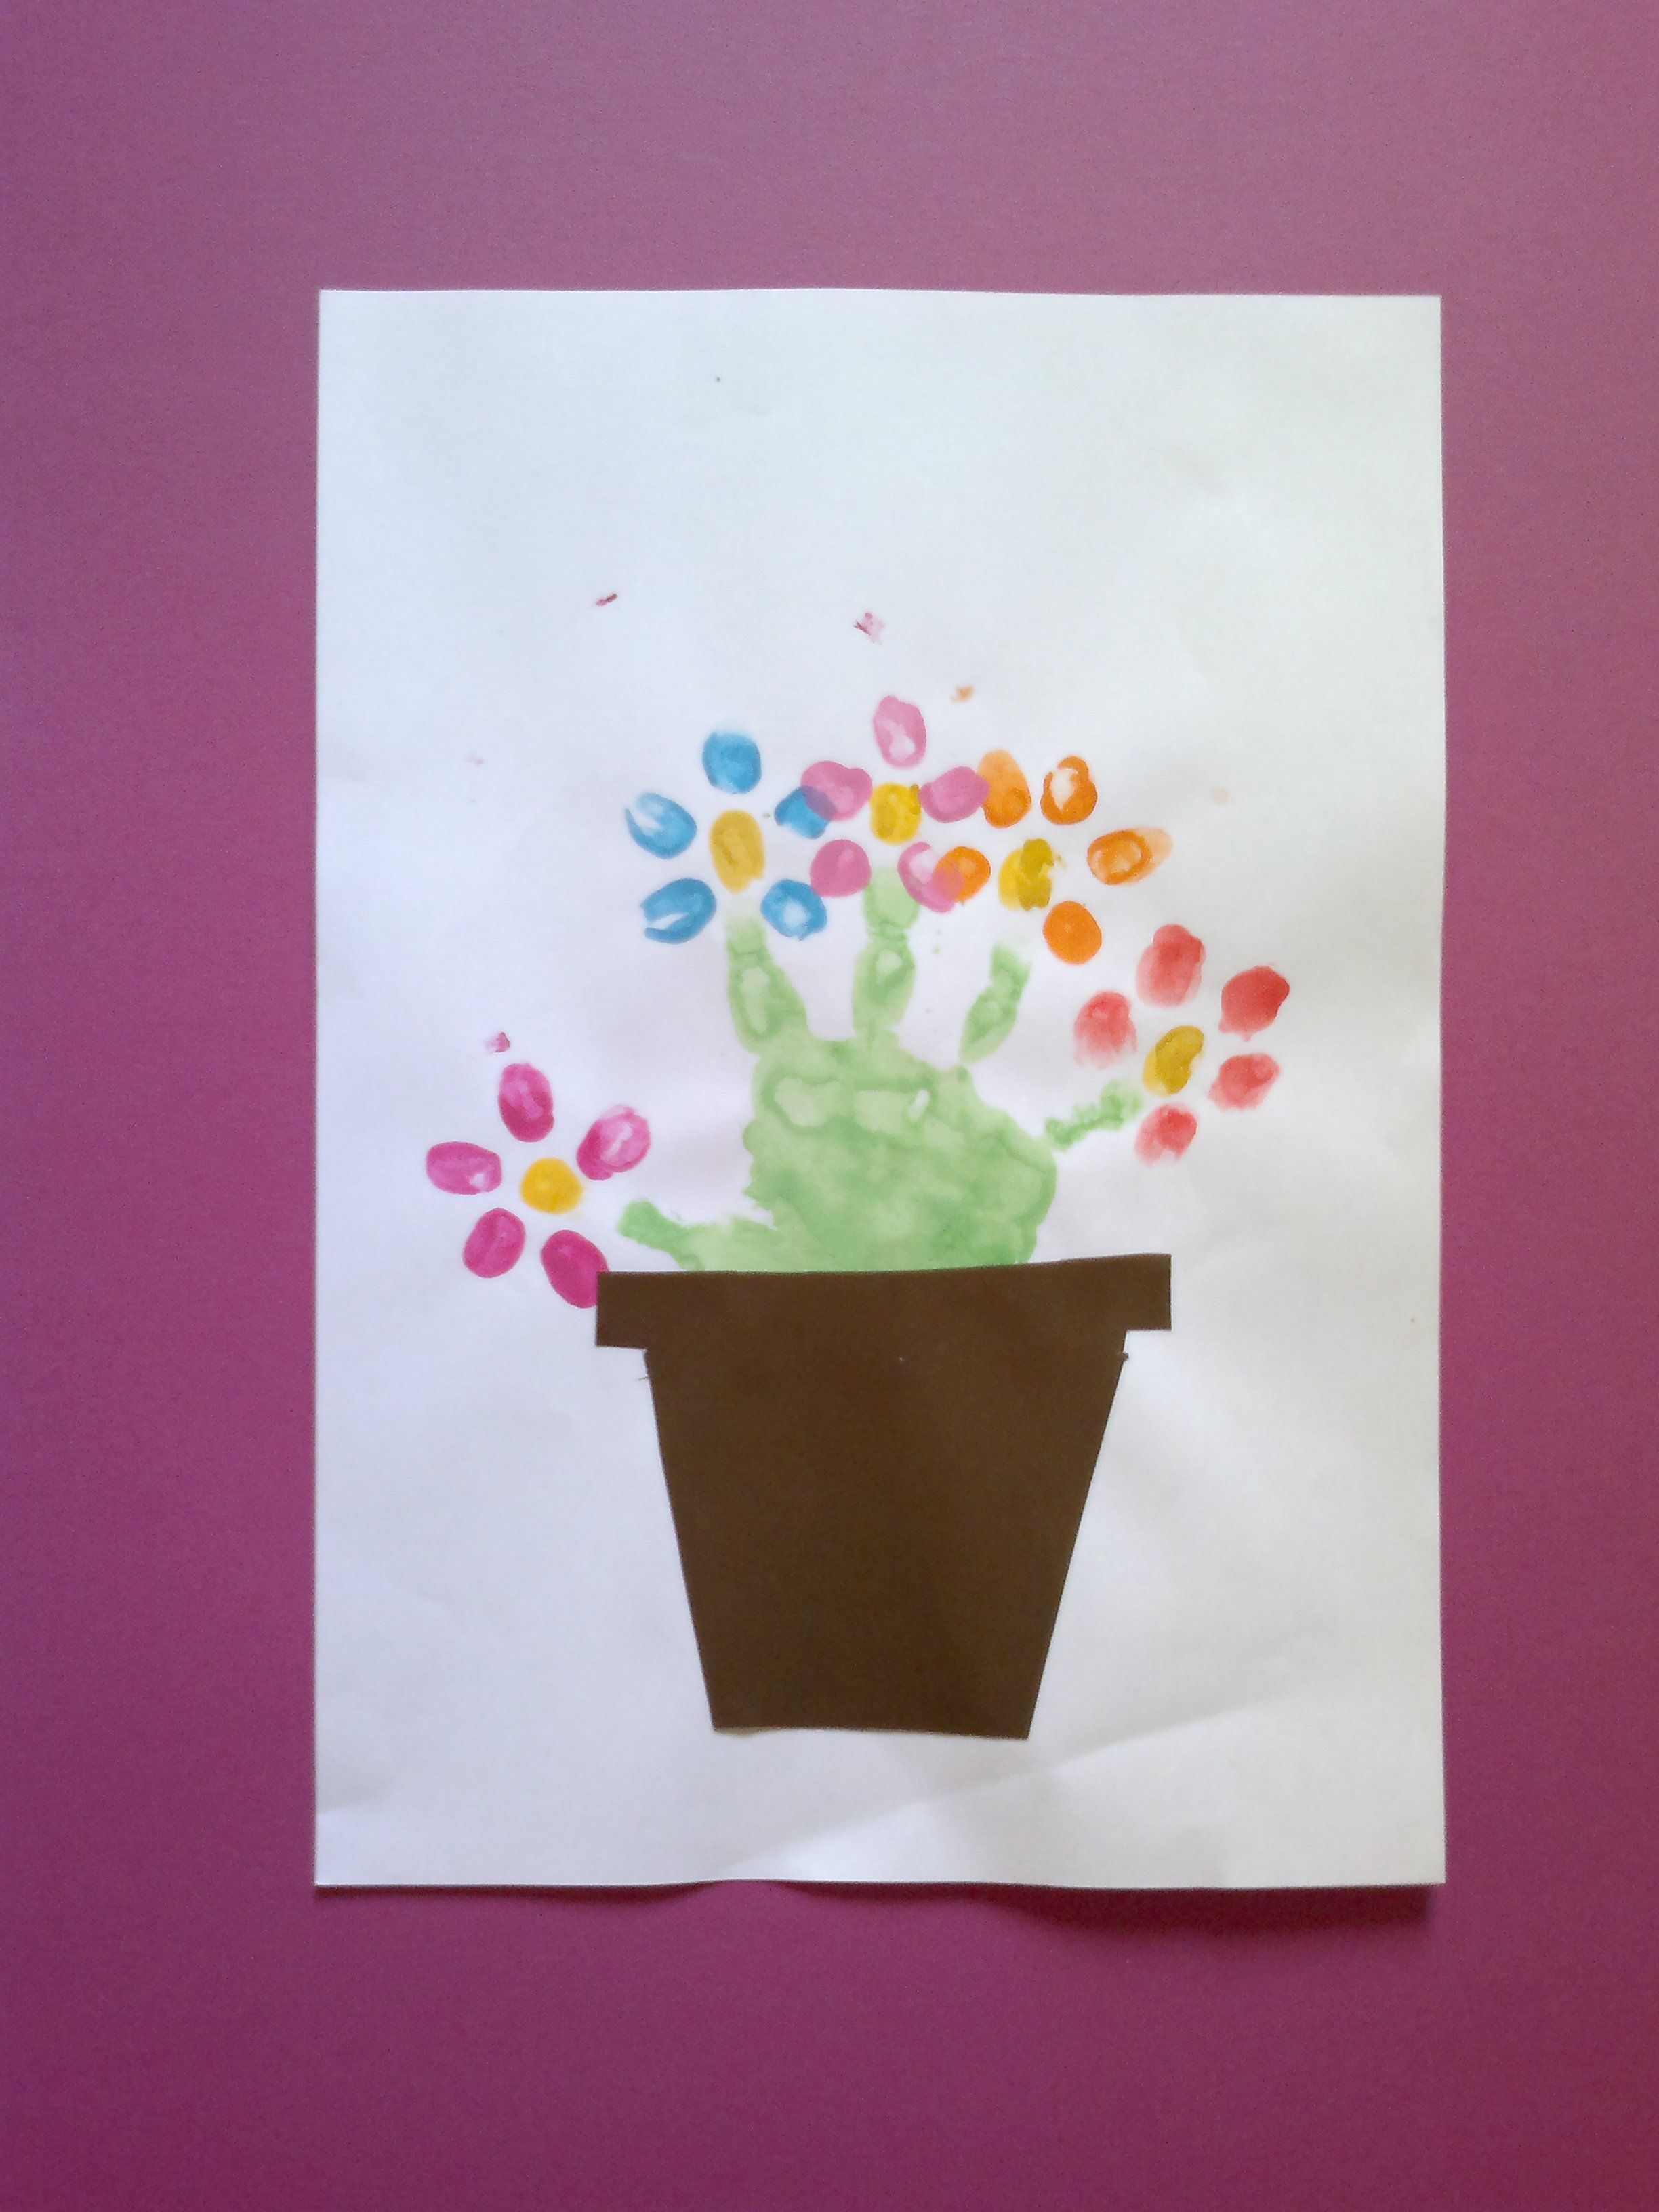 Finger Paint Flower Pot Younger Kids Babies Could Make During Party While Bracelets Are Being Made Then Pool Time After Getting Messy